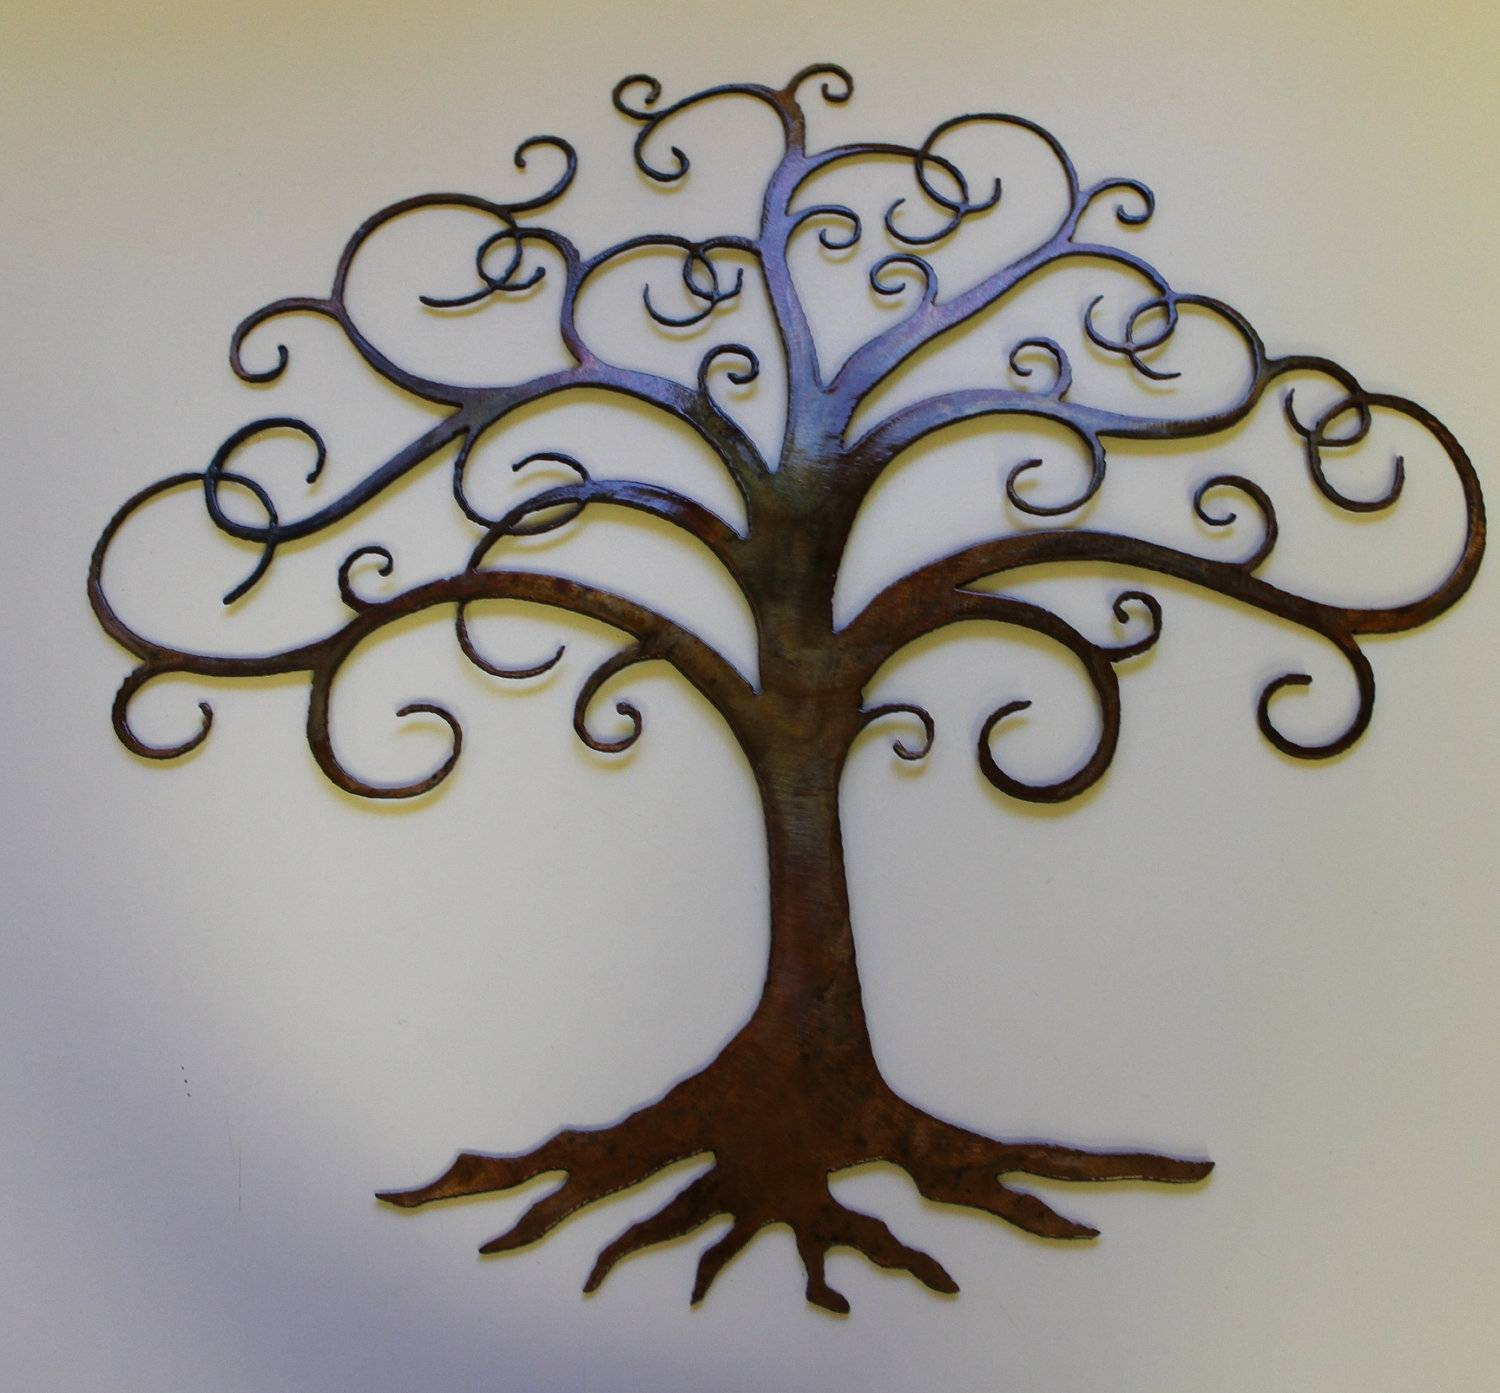 Wall Decor: Metal Tree Wall Decor Pictures. Design Ideas (View 21 of 25)